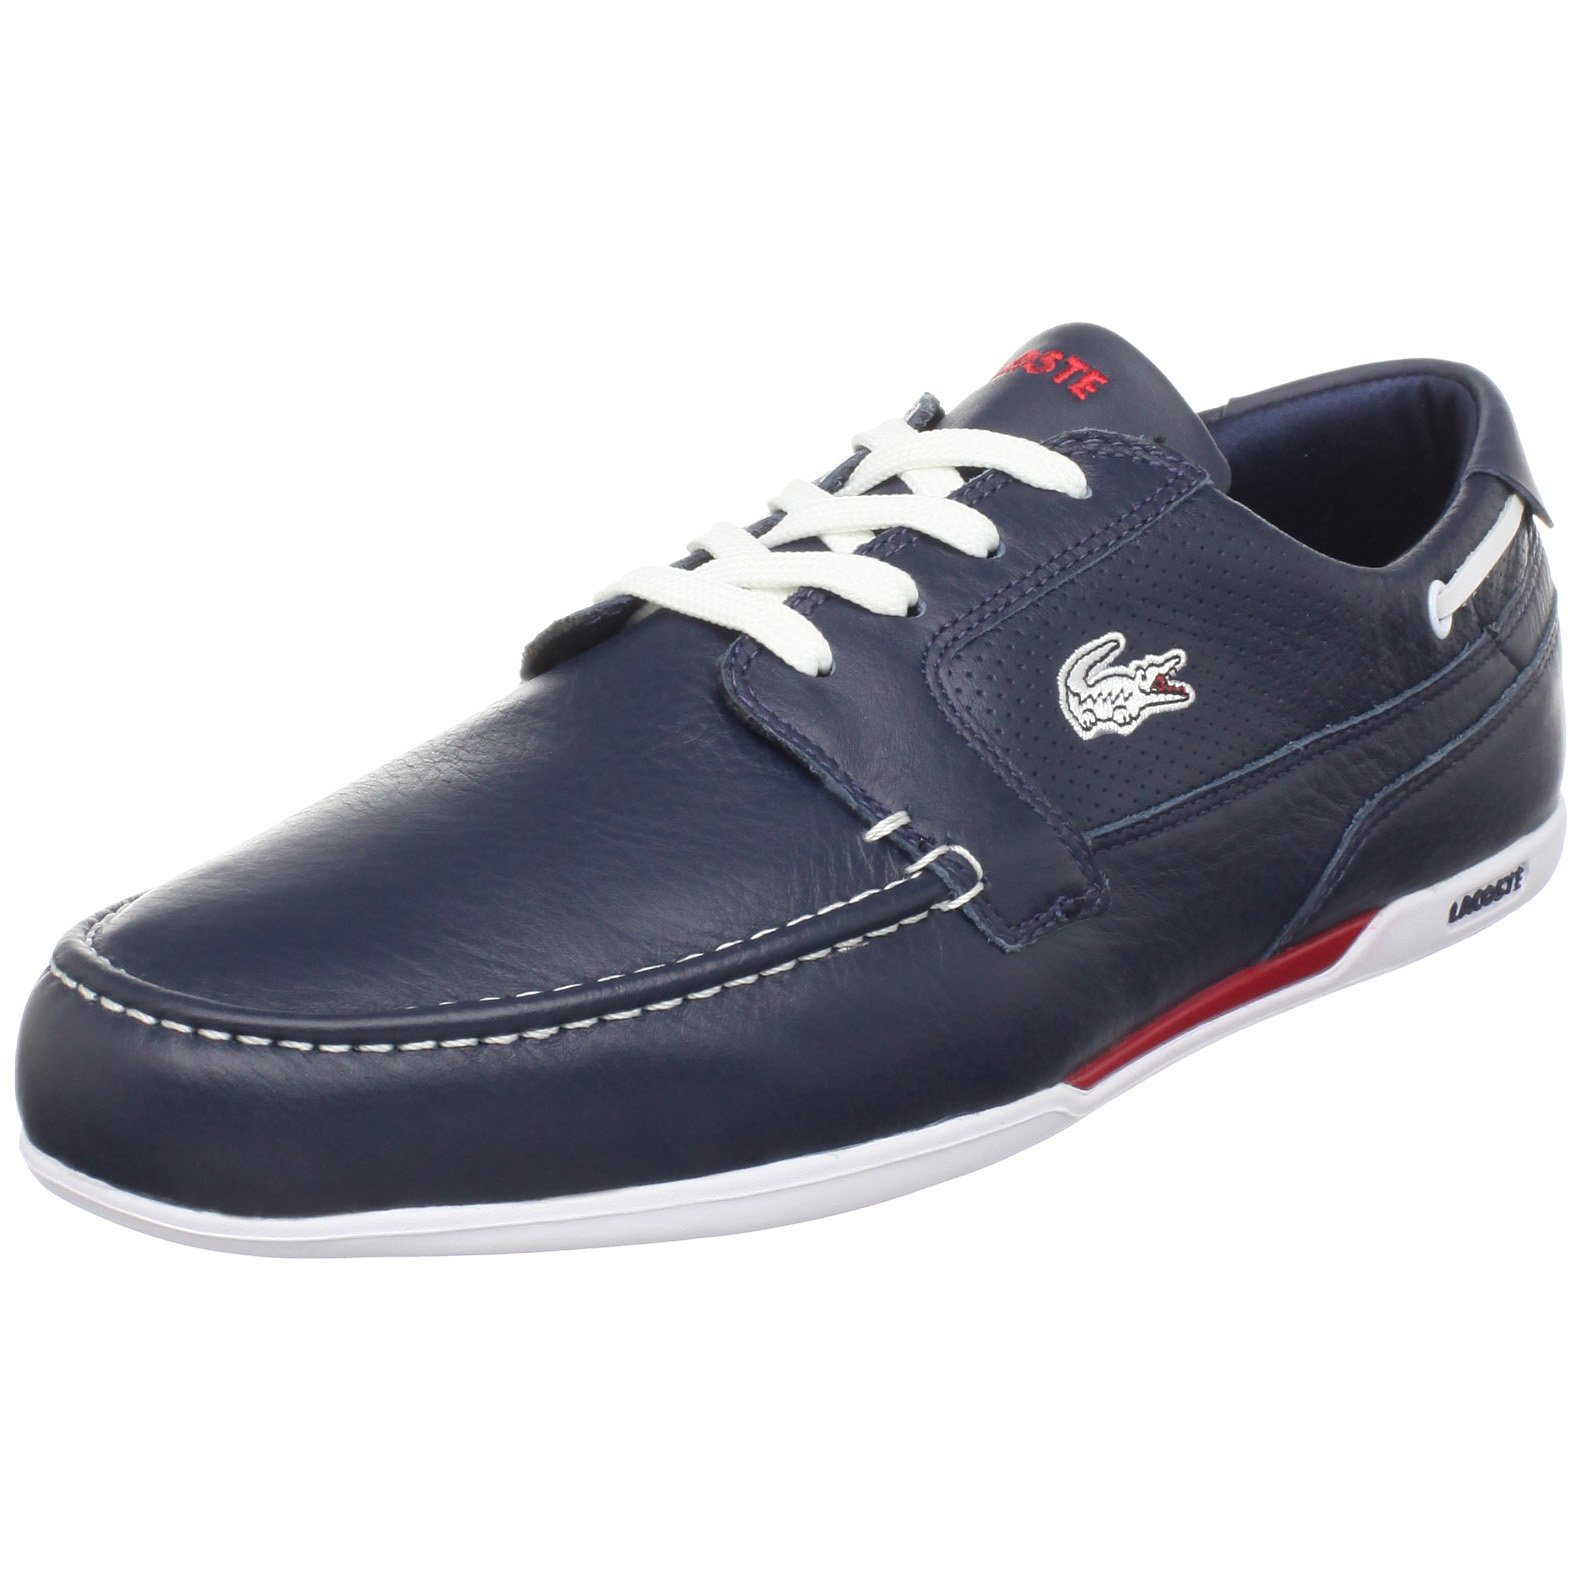 951e9f81bd9c4 Galleon - Lacoste Men s Dreyfus Boat Shoe